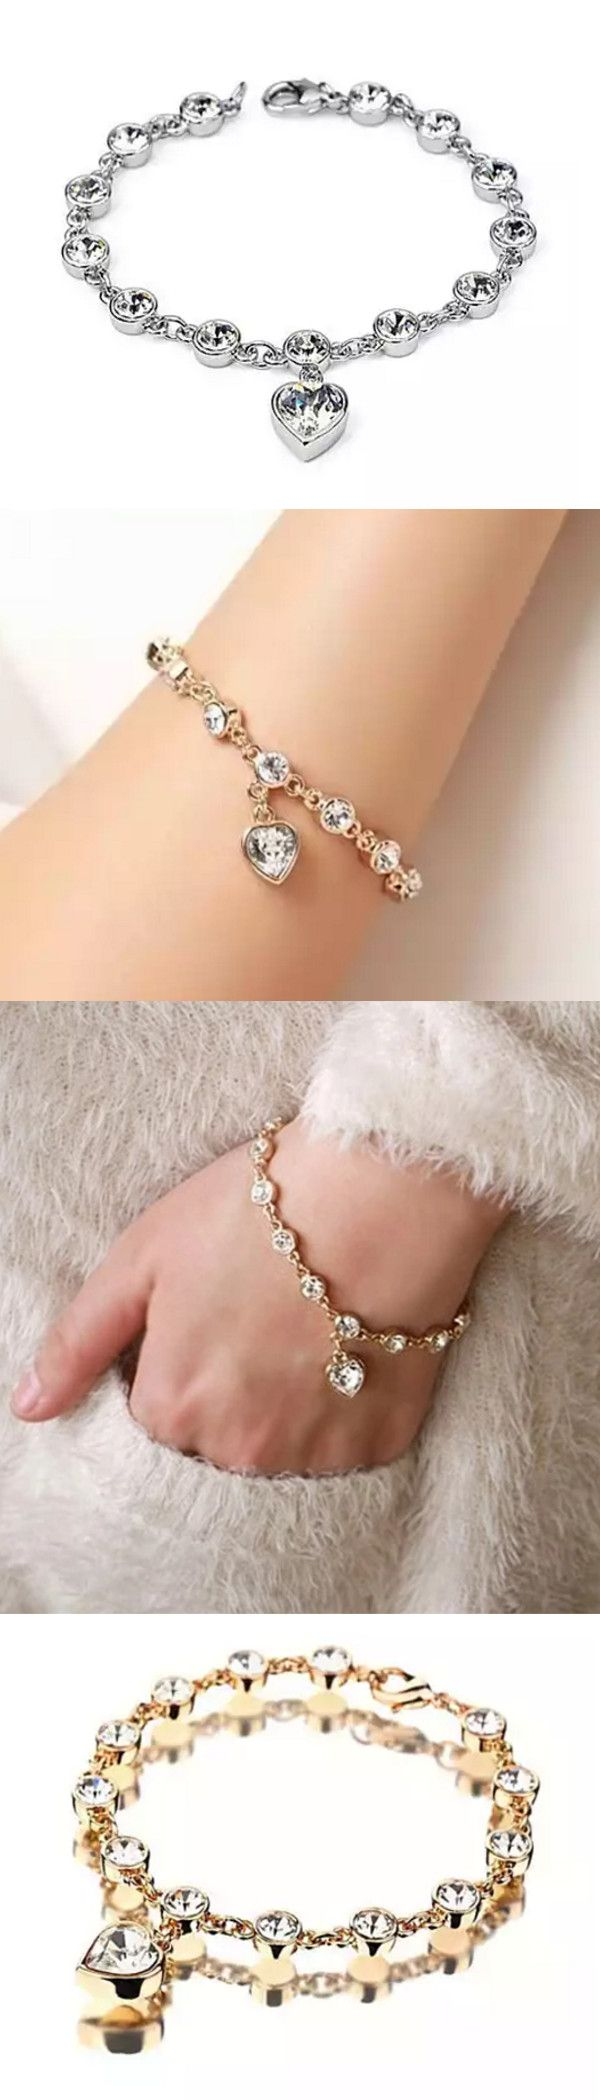 Stunning bracelet, perfect to wear day or night, chic and classic with jeans or with your little back dress. Dazzled with Austrian Swarovski Elements Crystals and featuring a dangling crystal heart. Also, they make a beautiful gift for any occasion.